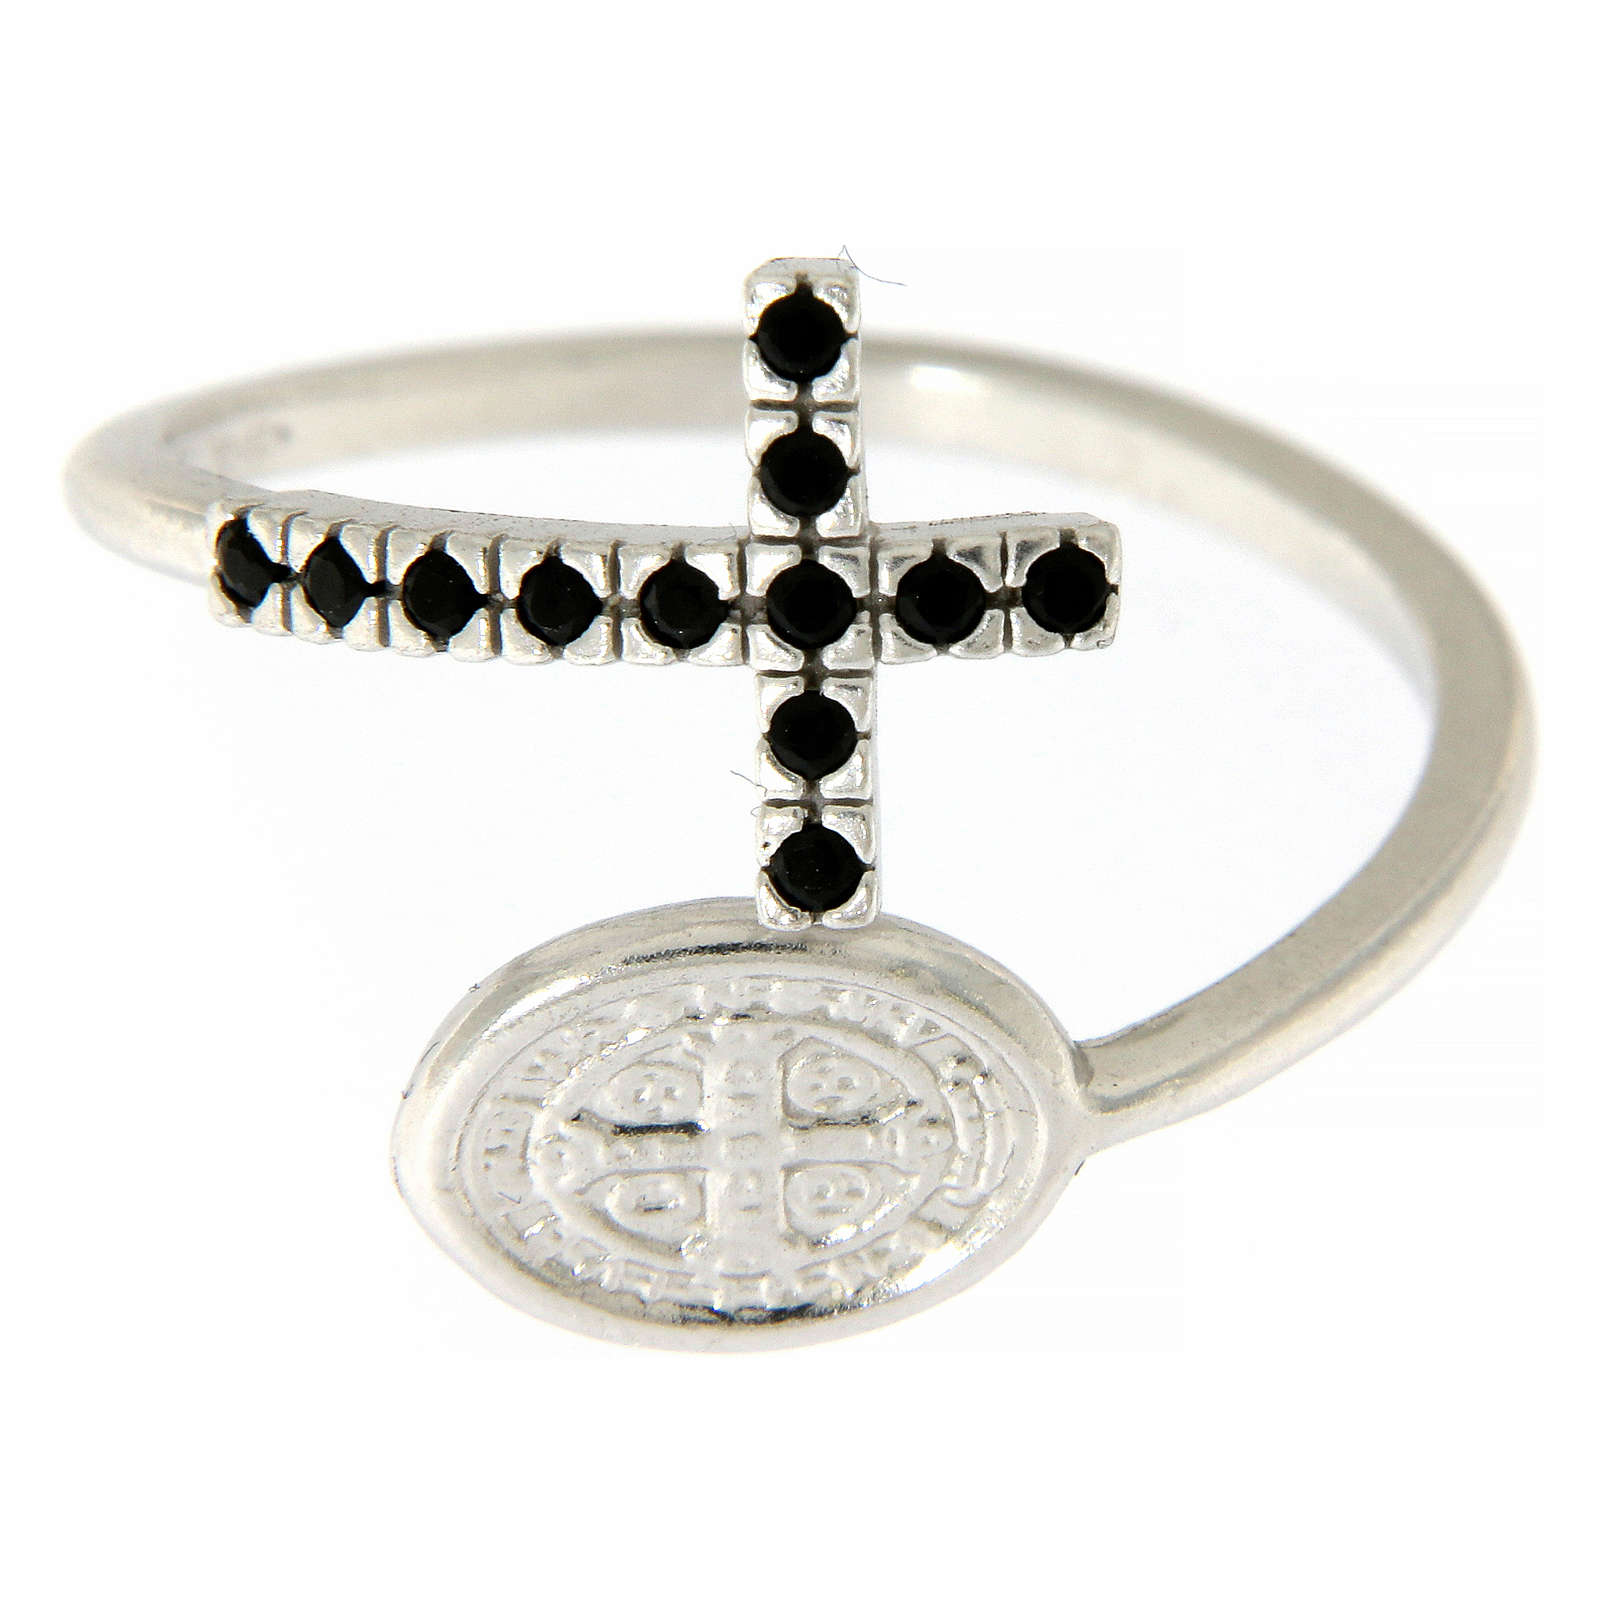 Ring with St. Benedict's medal in 925 silver and black rhinestones 3